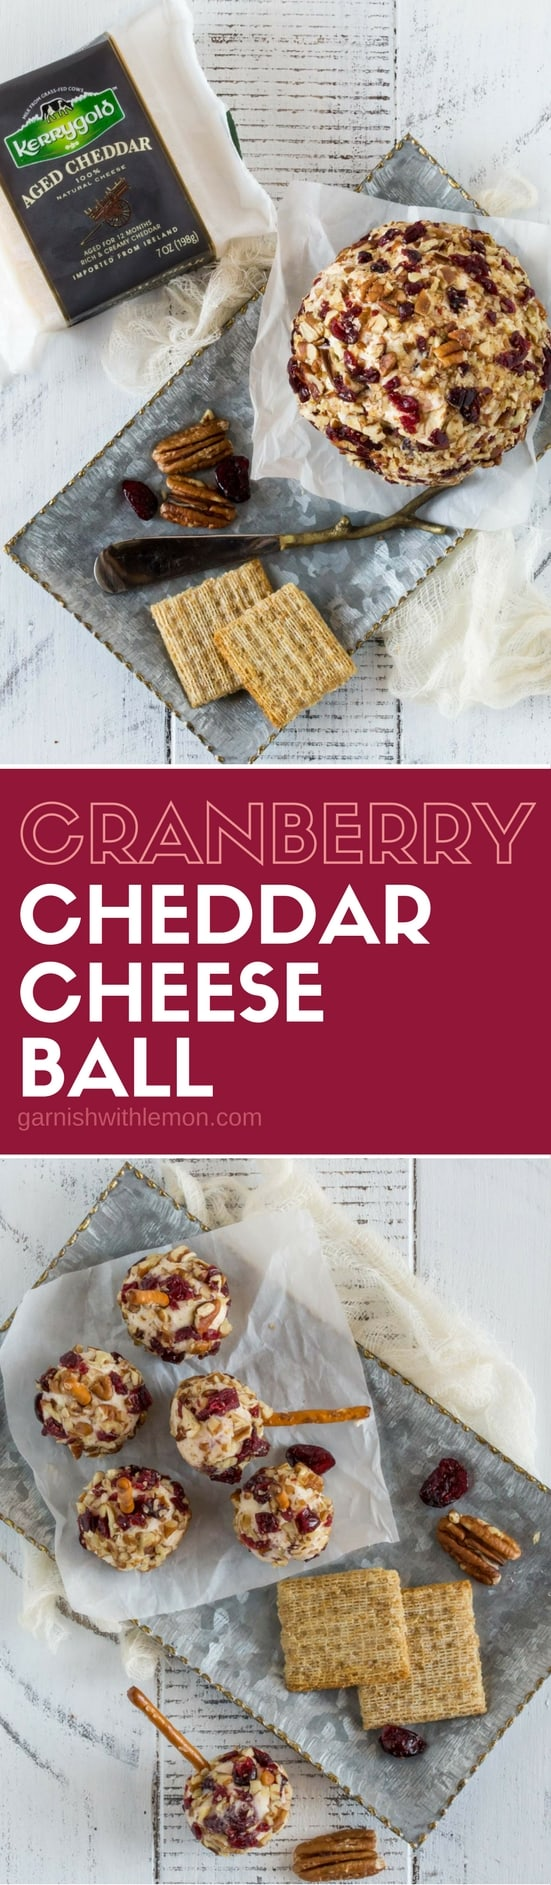 The holidays just got delicious with this easy make-ahead Cranberry Cheddar Cheese Ball. Feeling extra festive? Make mini cheese balls and serve with pretzel sticks! #appetizers #cheeseball #partyfood #cheddar #cheddarcheeseball